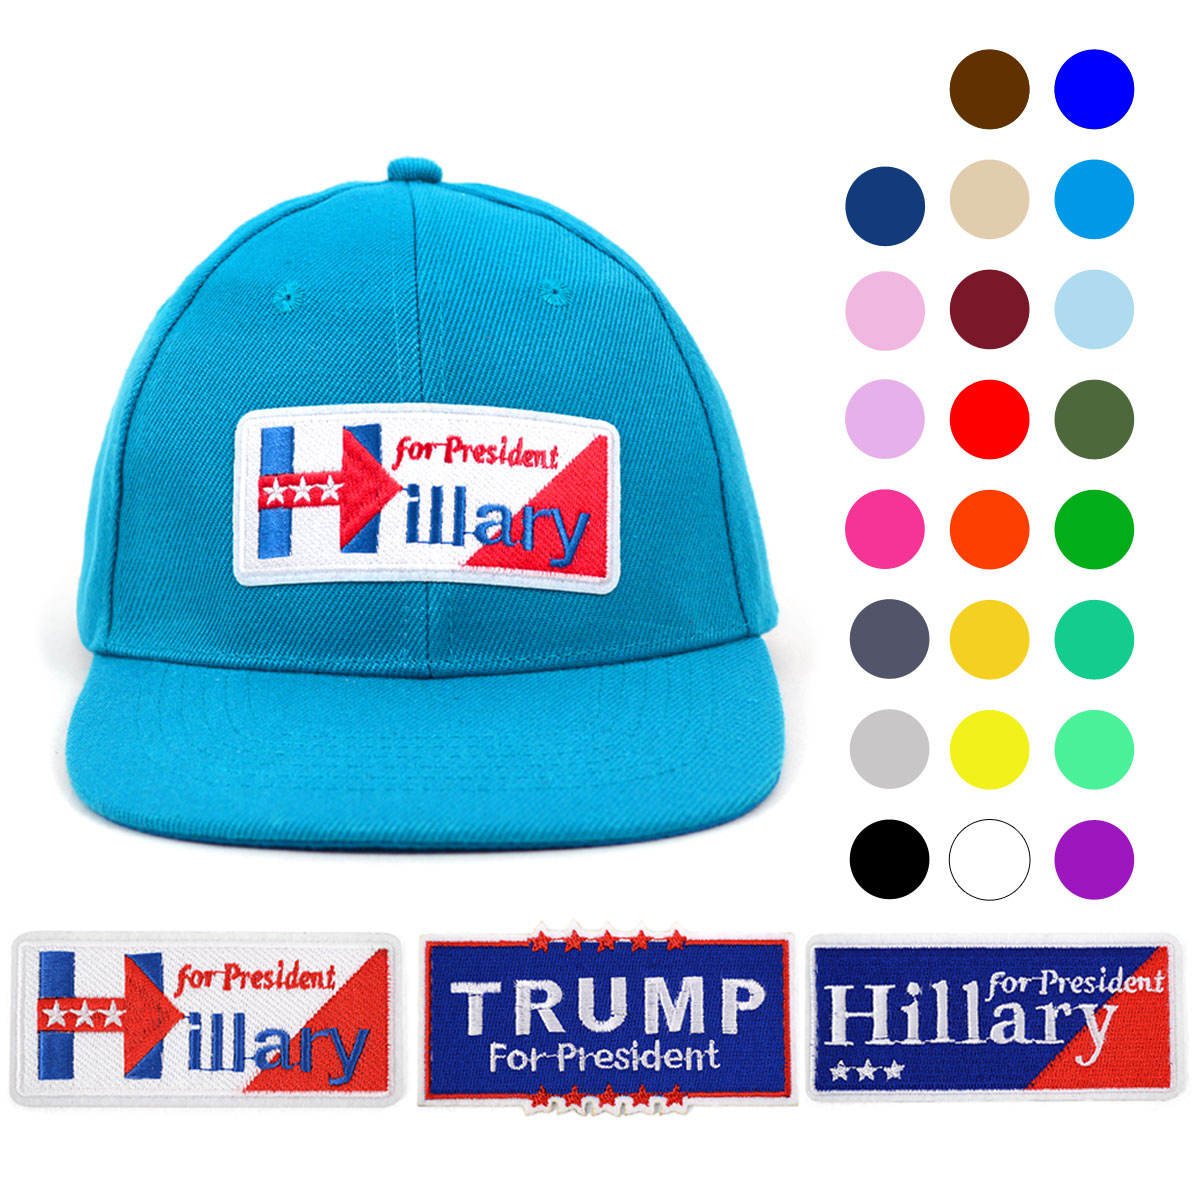 0d9bf6b2 2016 Hillary, Trump Promotional Solid Blank Embroidery Patch Baseball Cap,  Hat